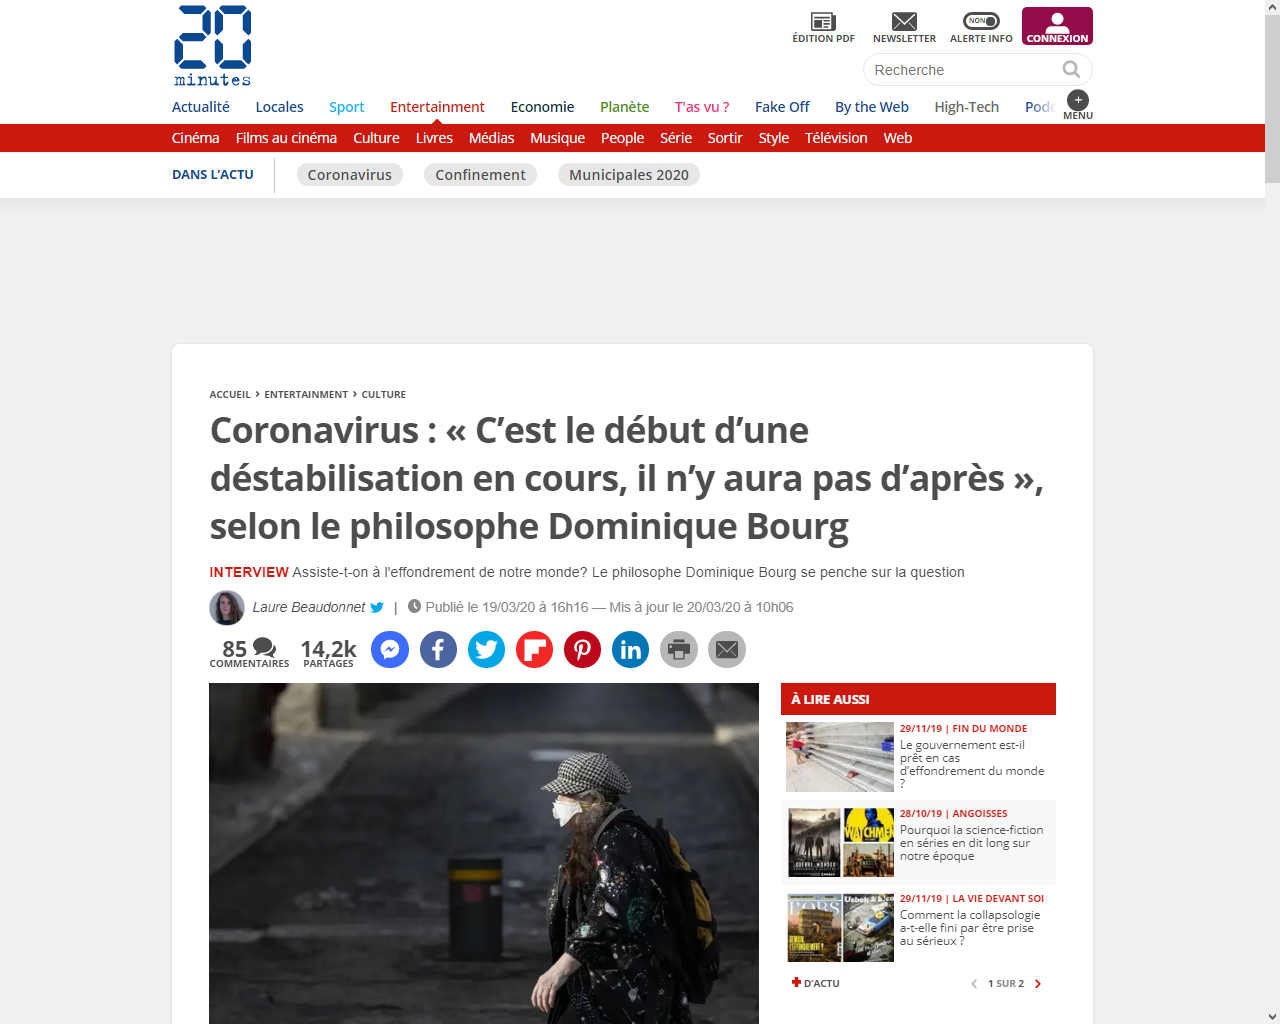 https://www.20minutes.fr/arts-stars/culture/2743779-20200319-coronavirus-debut-destabilisation-cours-apres-selon-philosophe-dominique-bourg